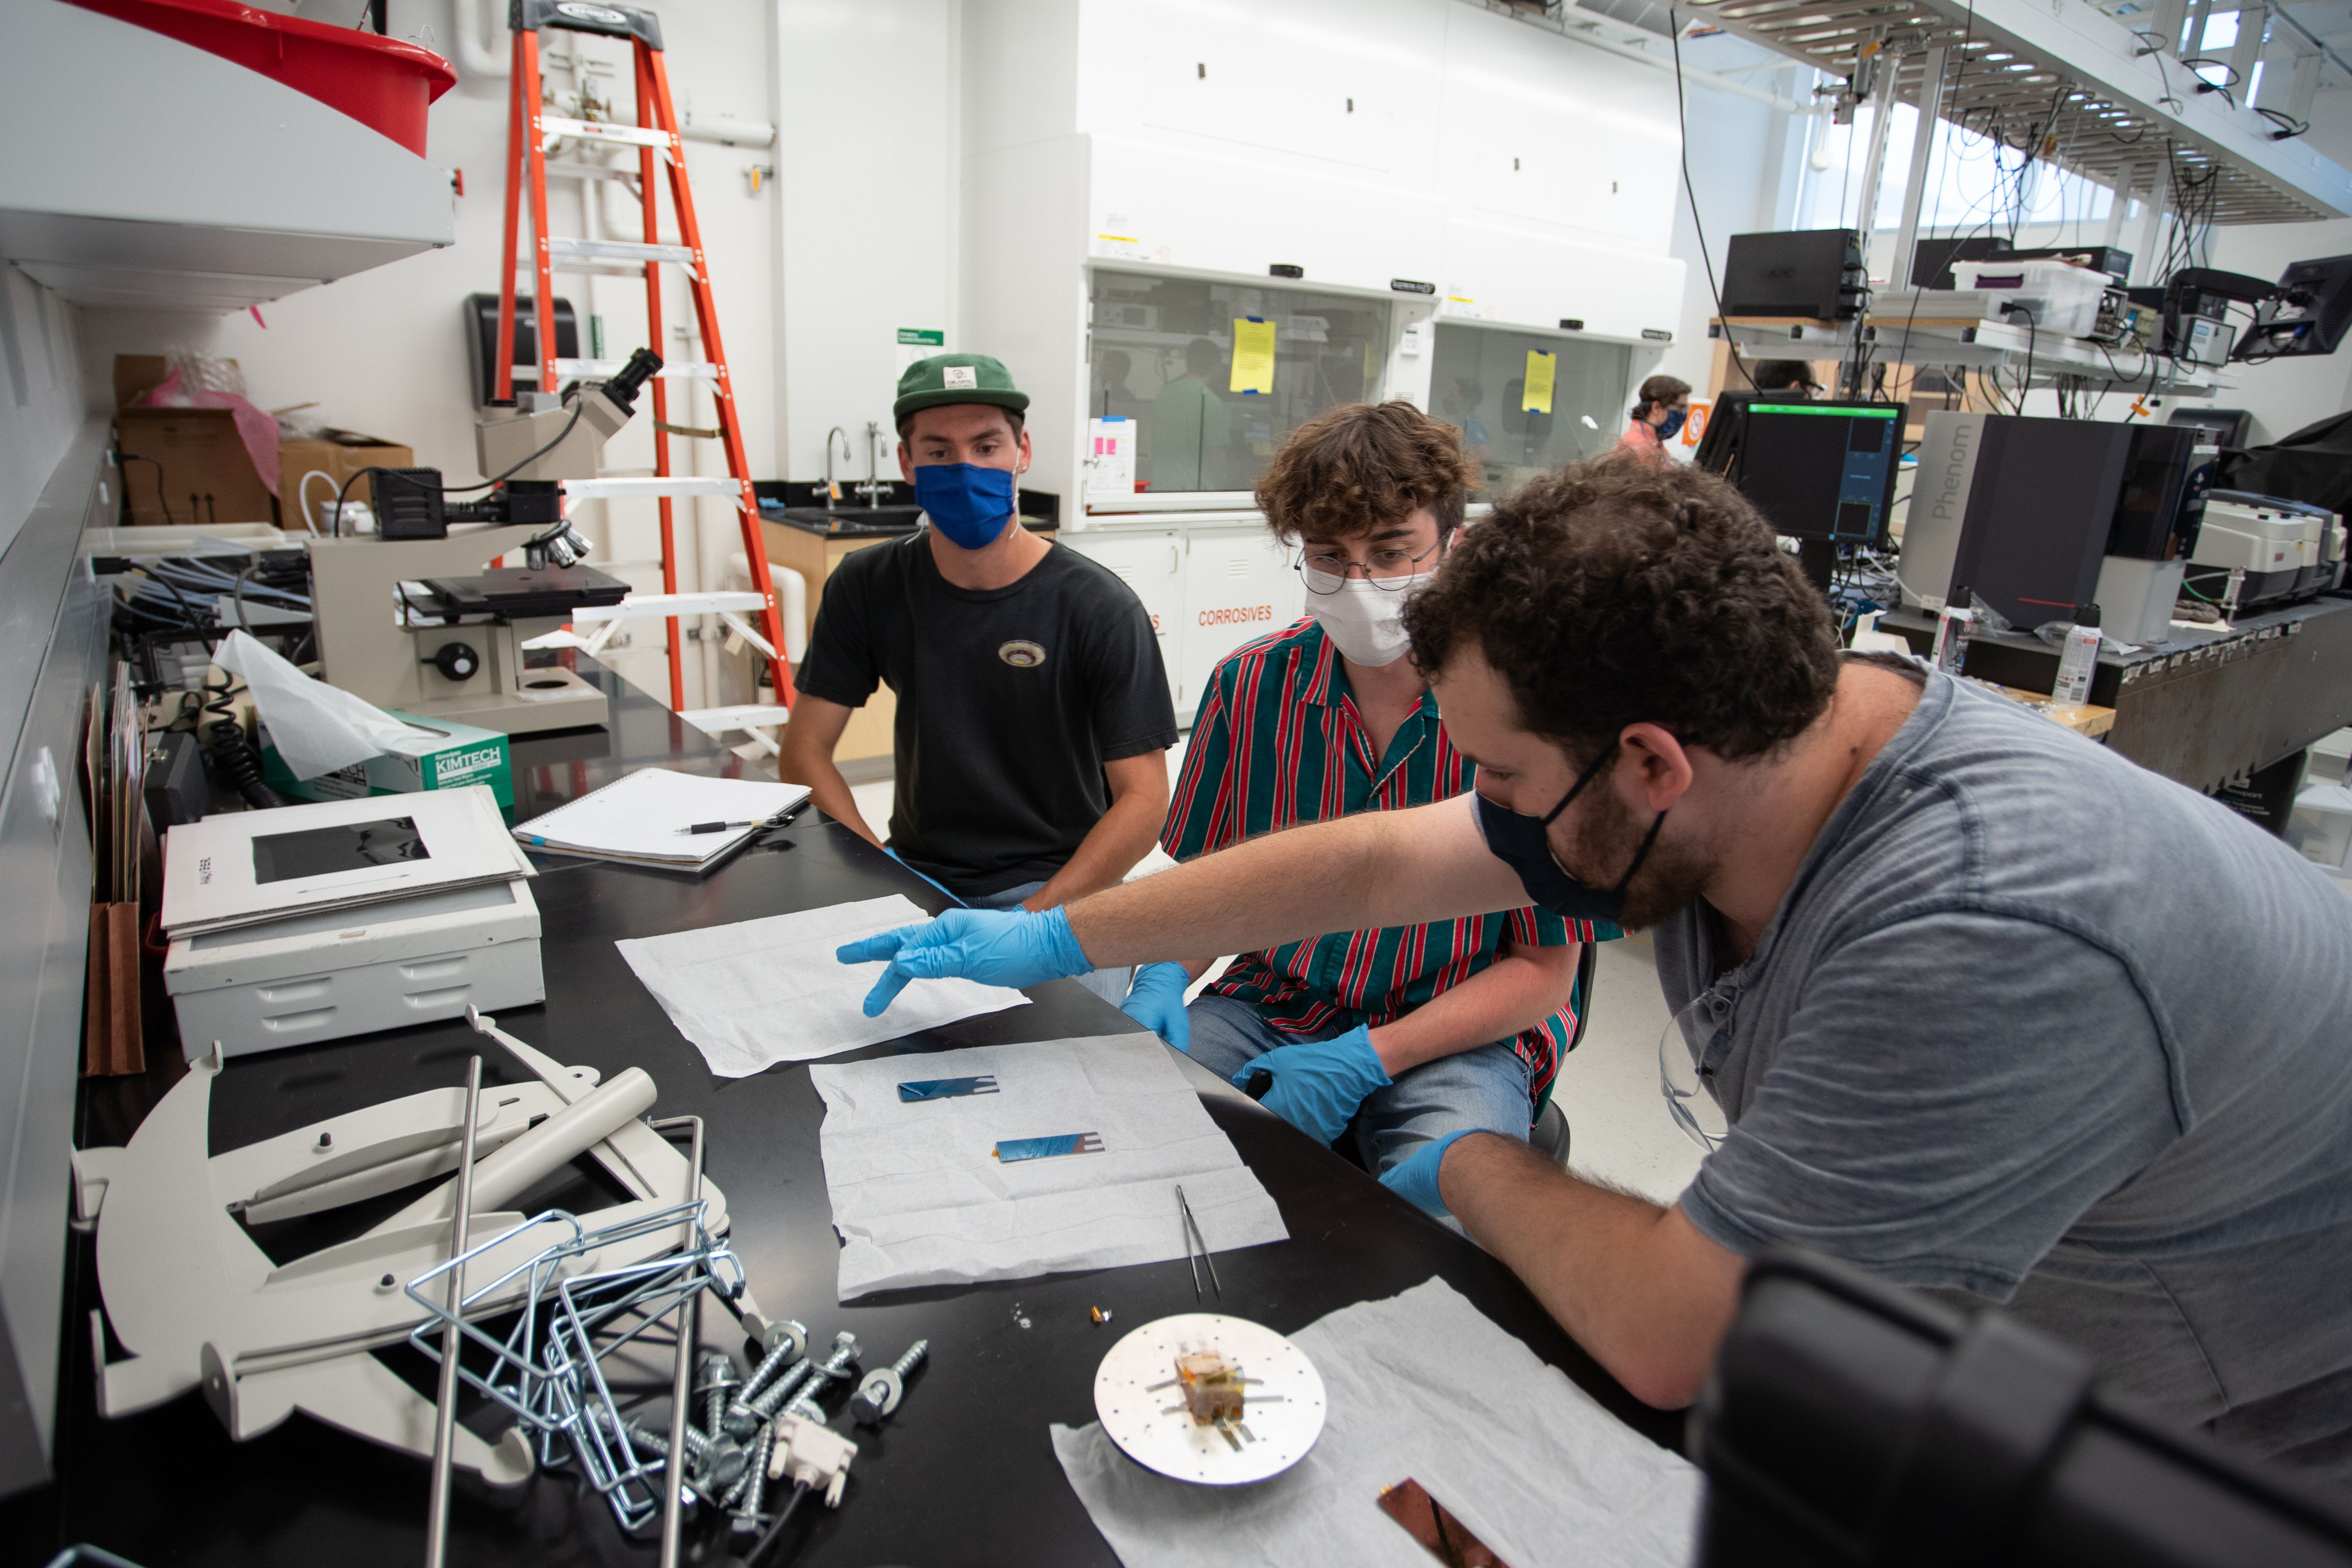 Three students wearing blue gloves gather around a work table in a lab class at the Colorado School of Mines. One student points at a paper.